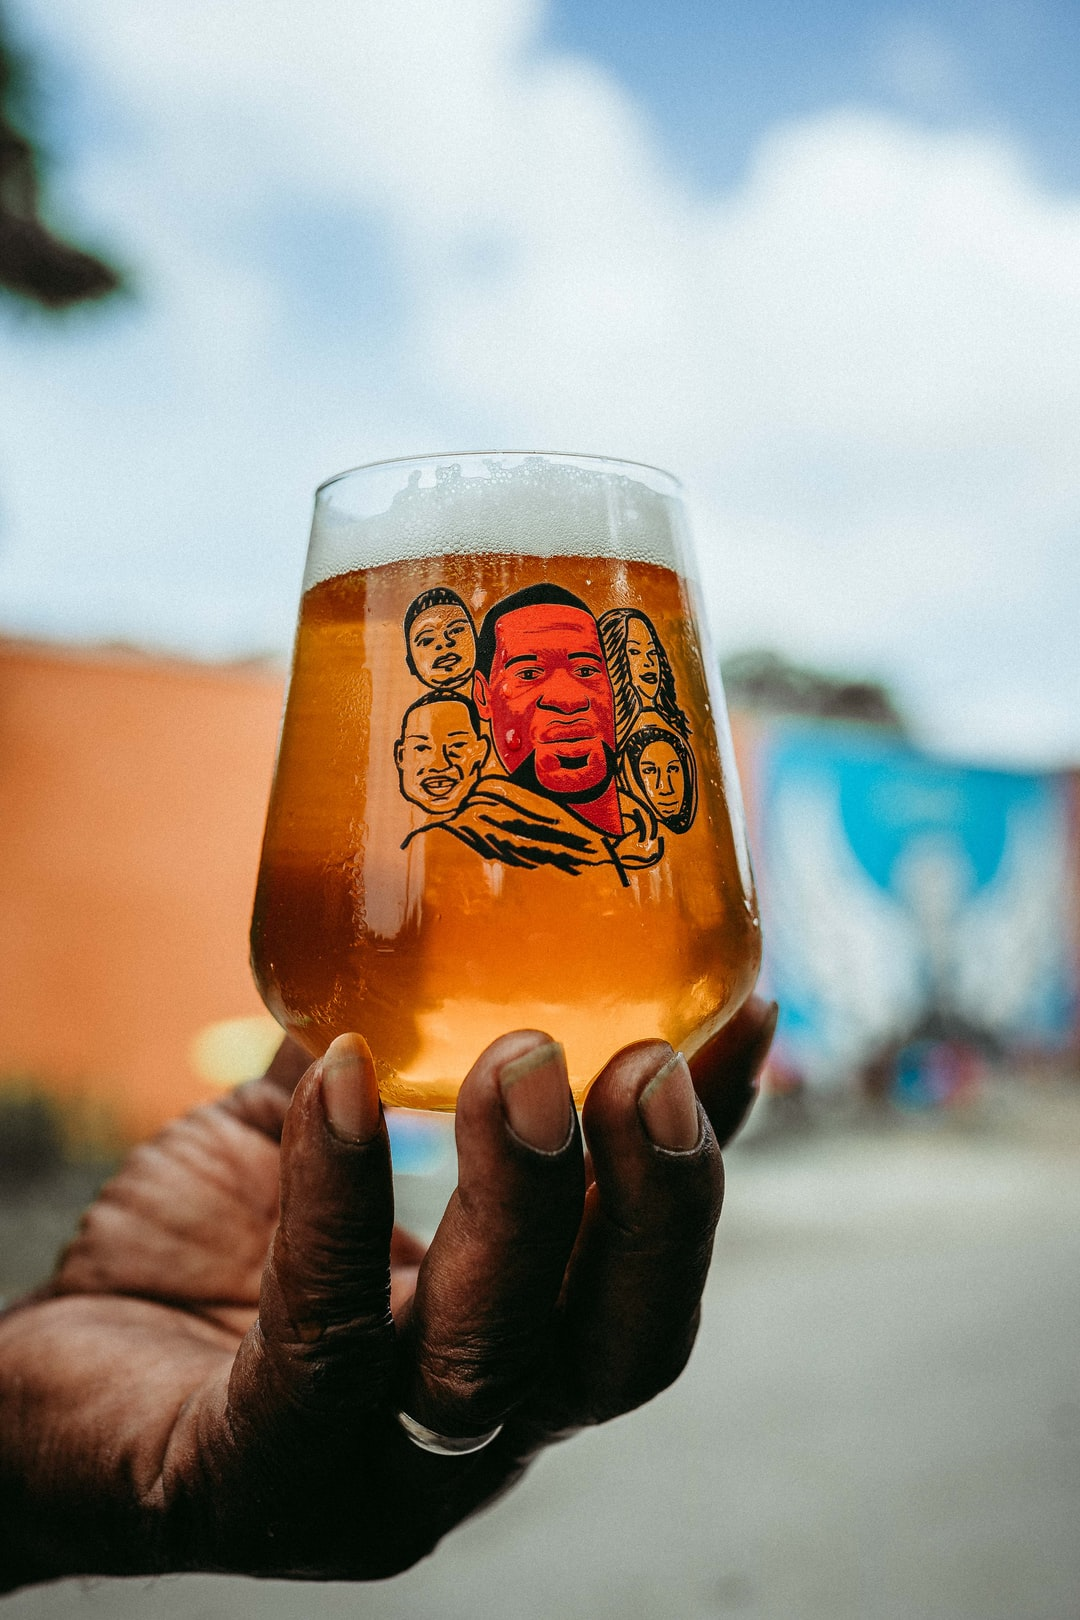 Mr. David Holding up Beer Chronicle's George Floyd glass. All profits and proceeds were donated to Floyd's family. Over $4000 was donated. My Instagram: https://www.instagram.com/josh_olalde/  link to purchase glas: https://houstonbeer.af/collections/frontpage/products/george-floyd-stemless-teku  Editorial Article on Black Is Beautiful http://beerchronicle.com/weathered-souls-black-is-beautiful-beer-collaboration/  Blog Beer Chronicle: http://beerchronicle.com/  Nicky Davis website: https://nickydavis.com